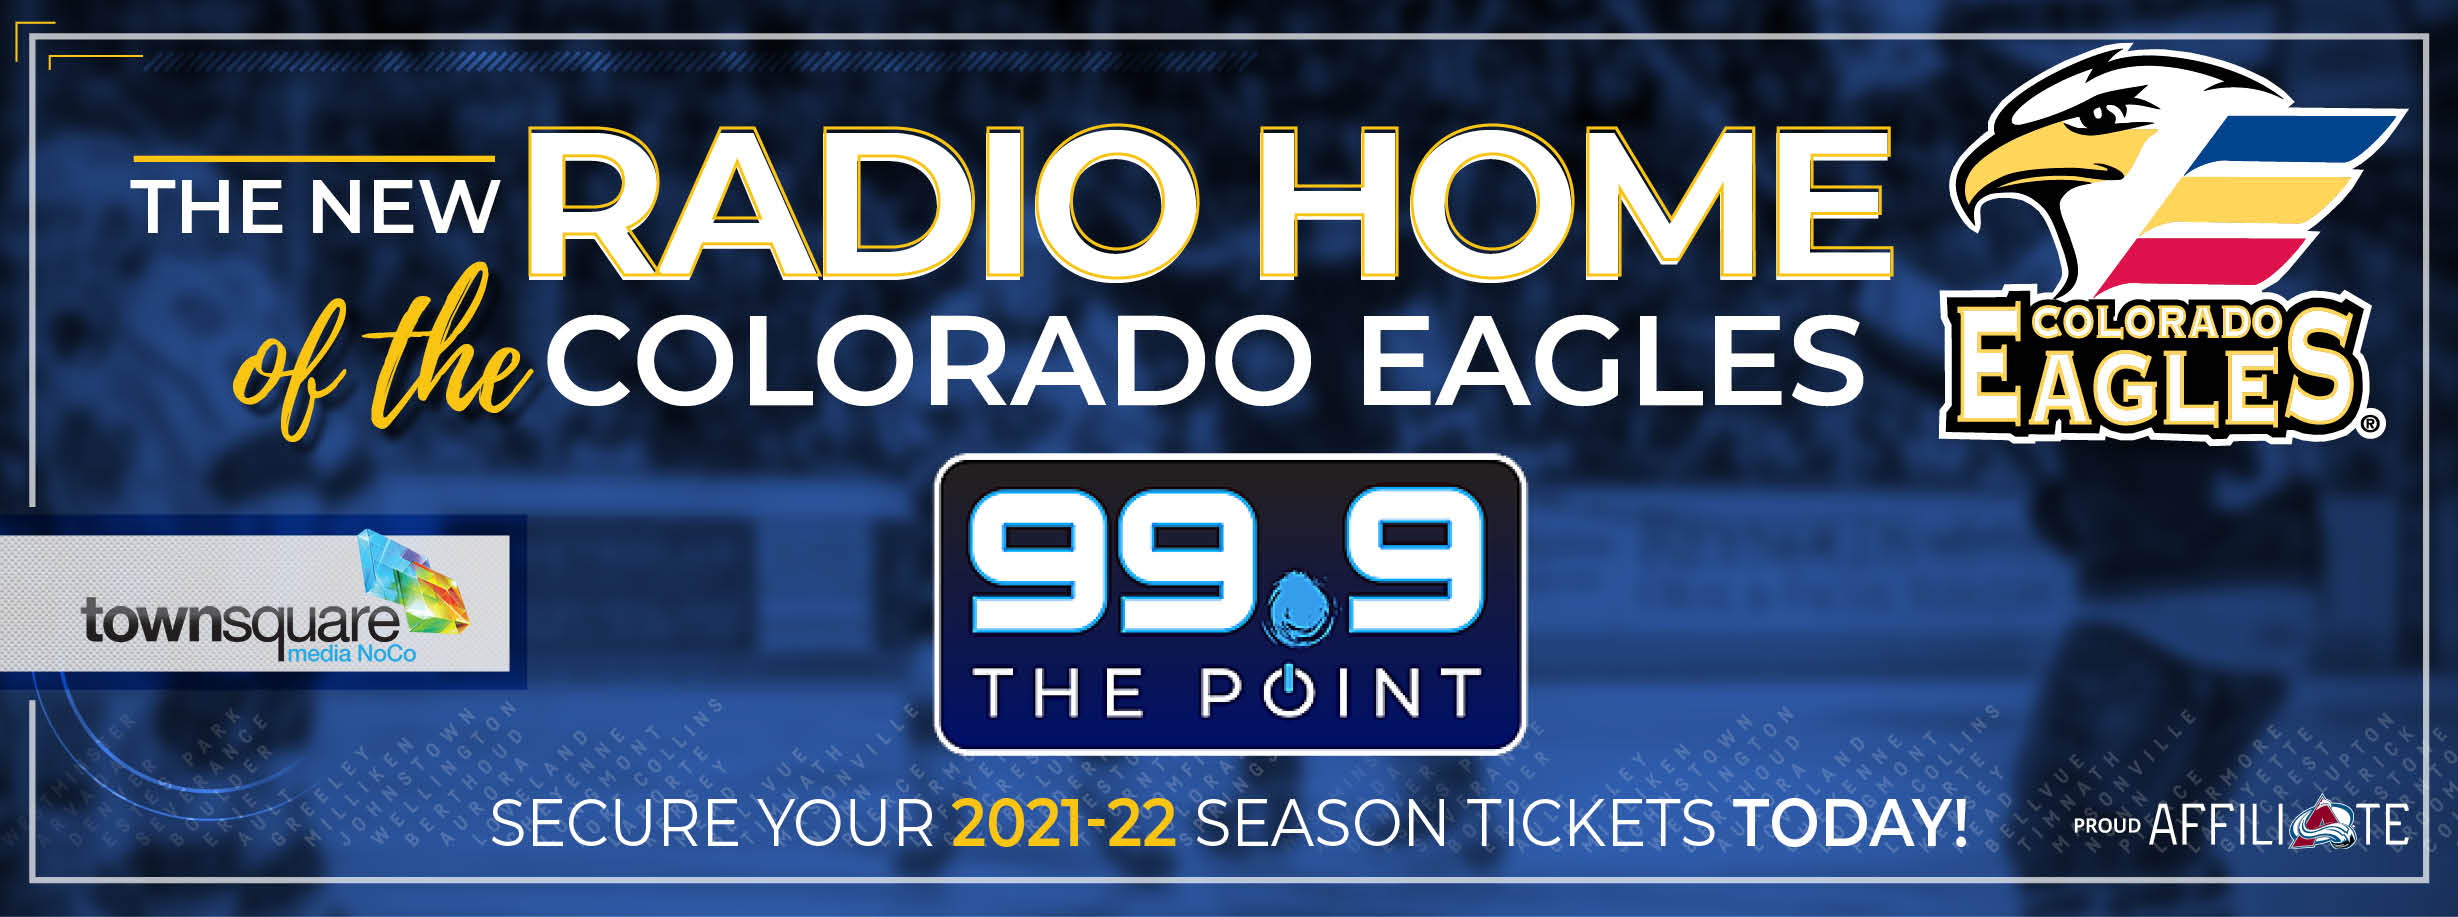 99.9 The Point New Radio Home of Colorado Eagles